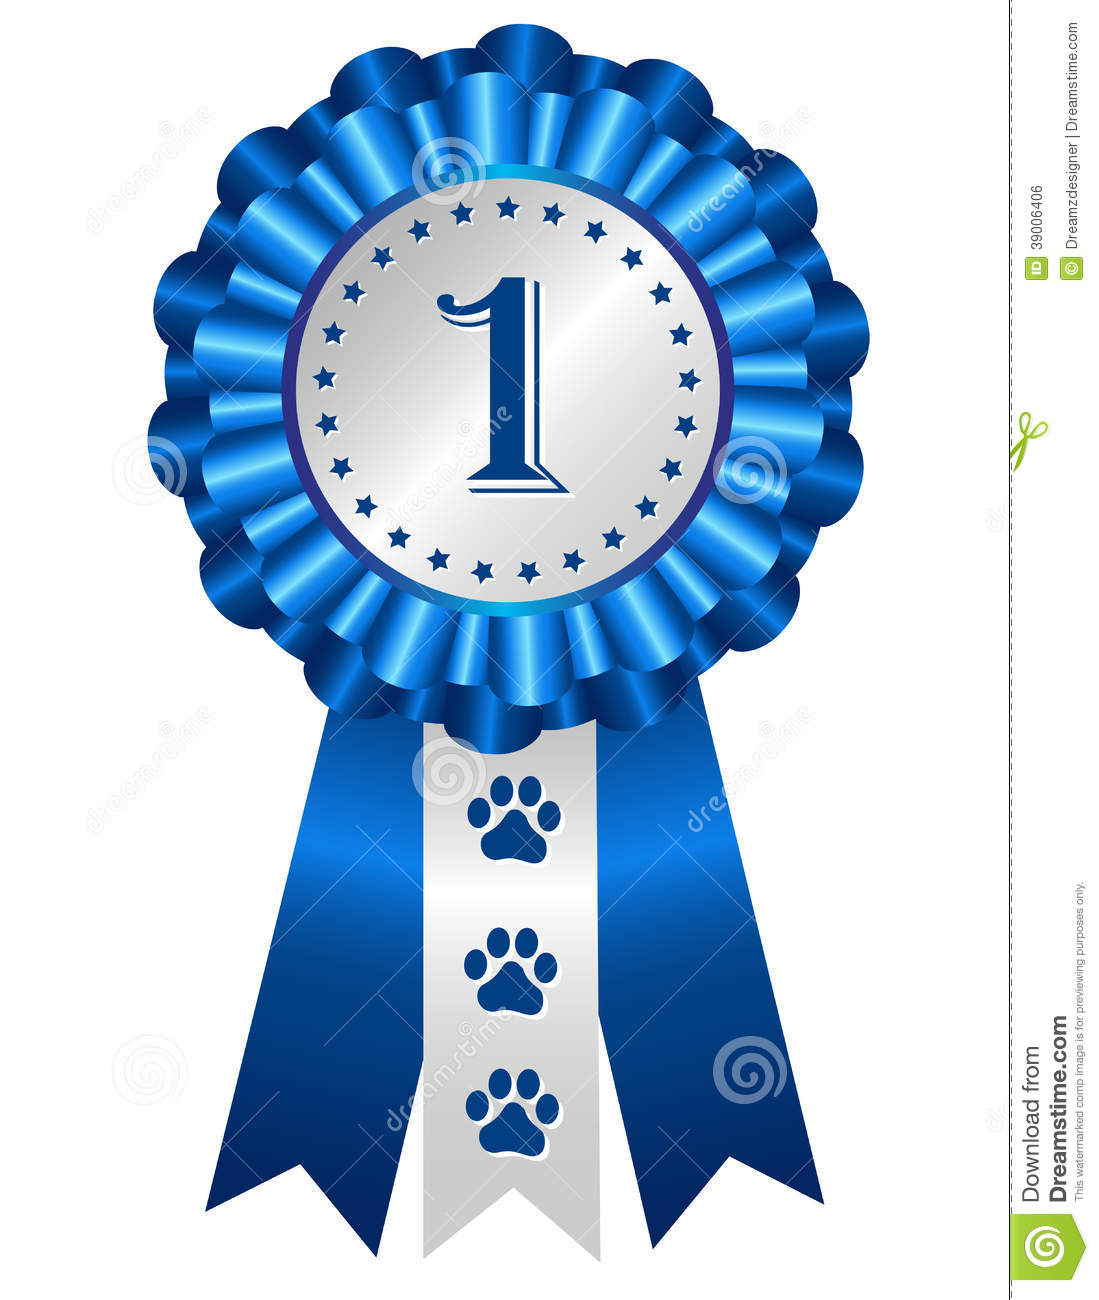 Number 1 ribbon clipart clipart transparent download Dog Show Ribbon Clipart - Clipart Kid clipart transparent download